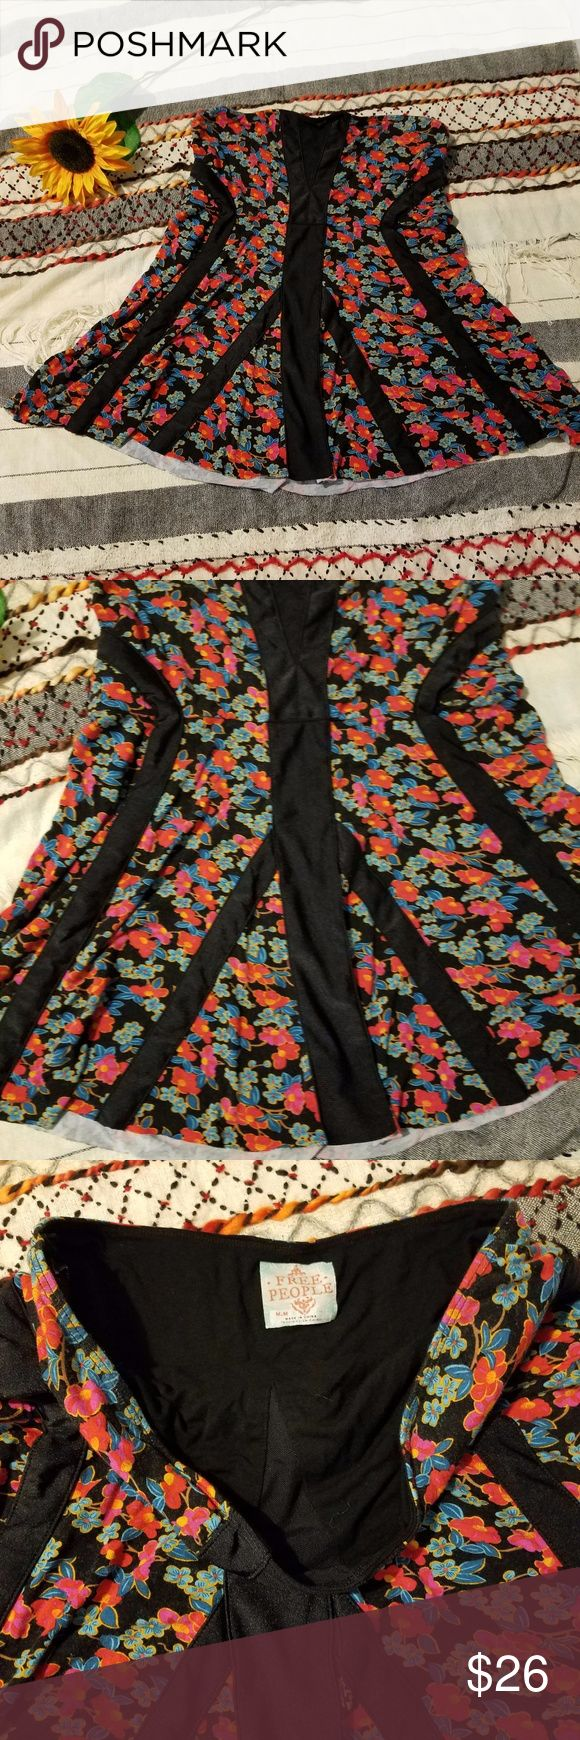 Free People Kimono-Print Tube Top Size medium Free people tank in excellent condition! No flaws, stains, or wear. Great with leggings, jeans, or a pencil skirt.  Any additional questions? Please do not hesitate to ask! :) -bn5- Free People Tops